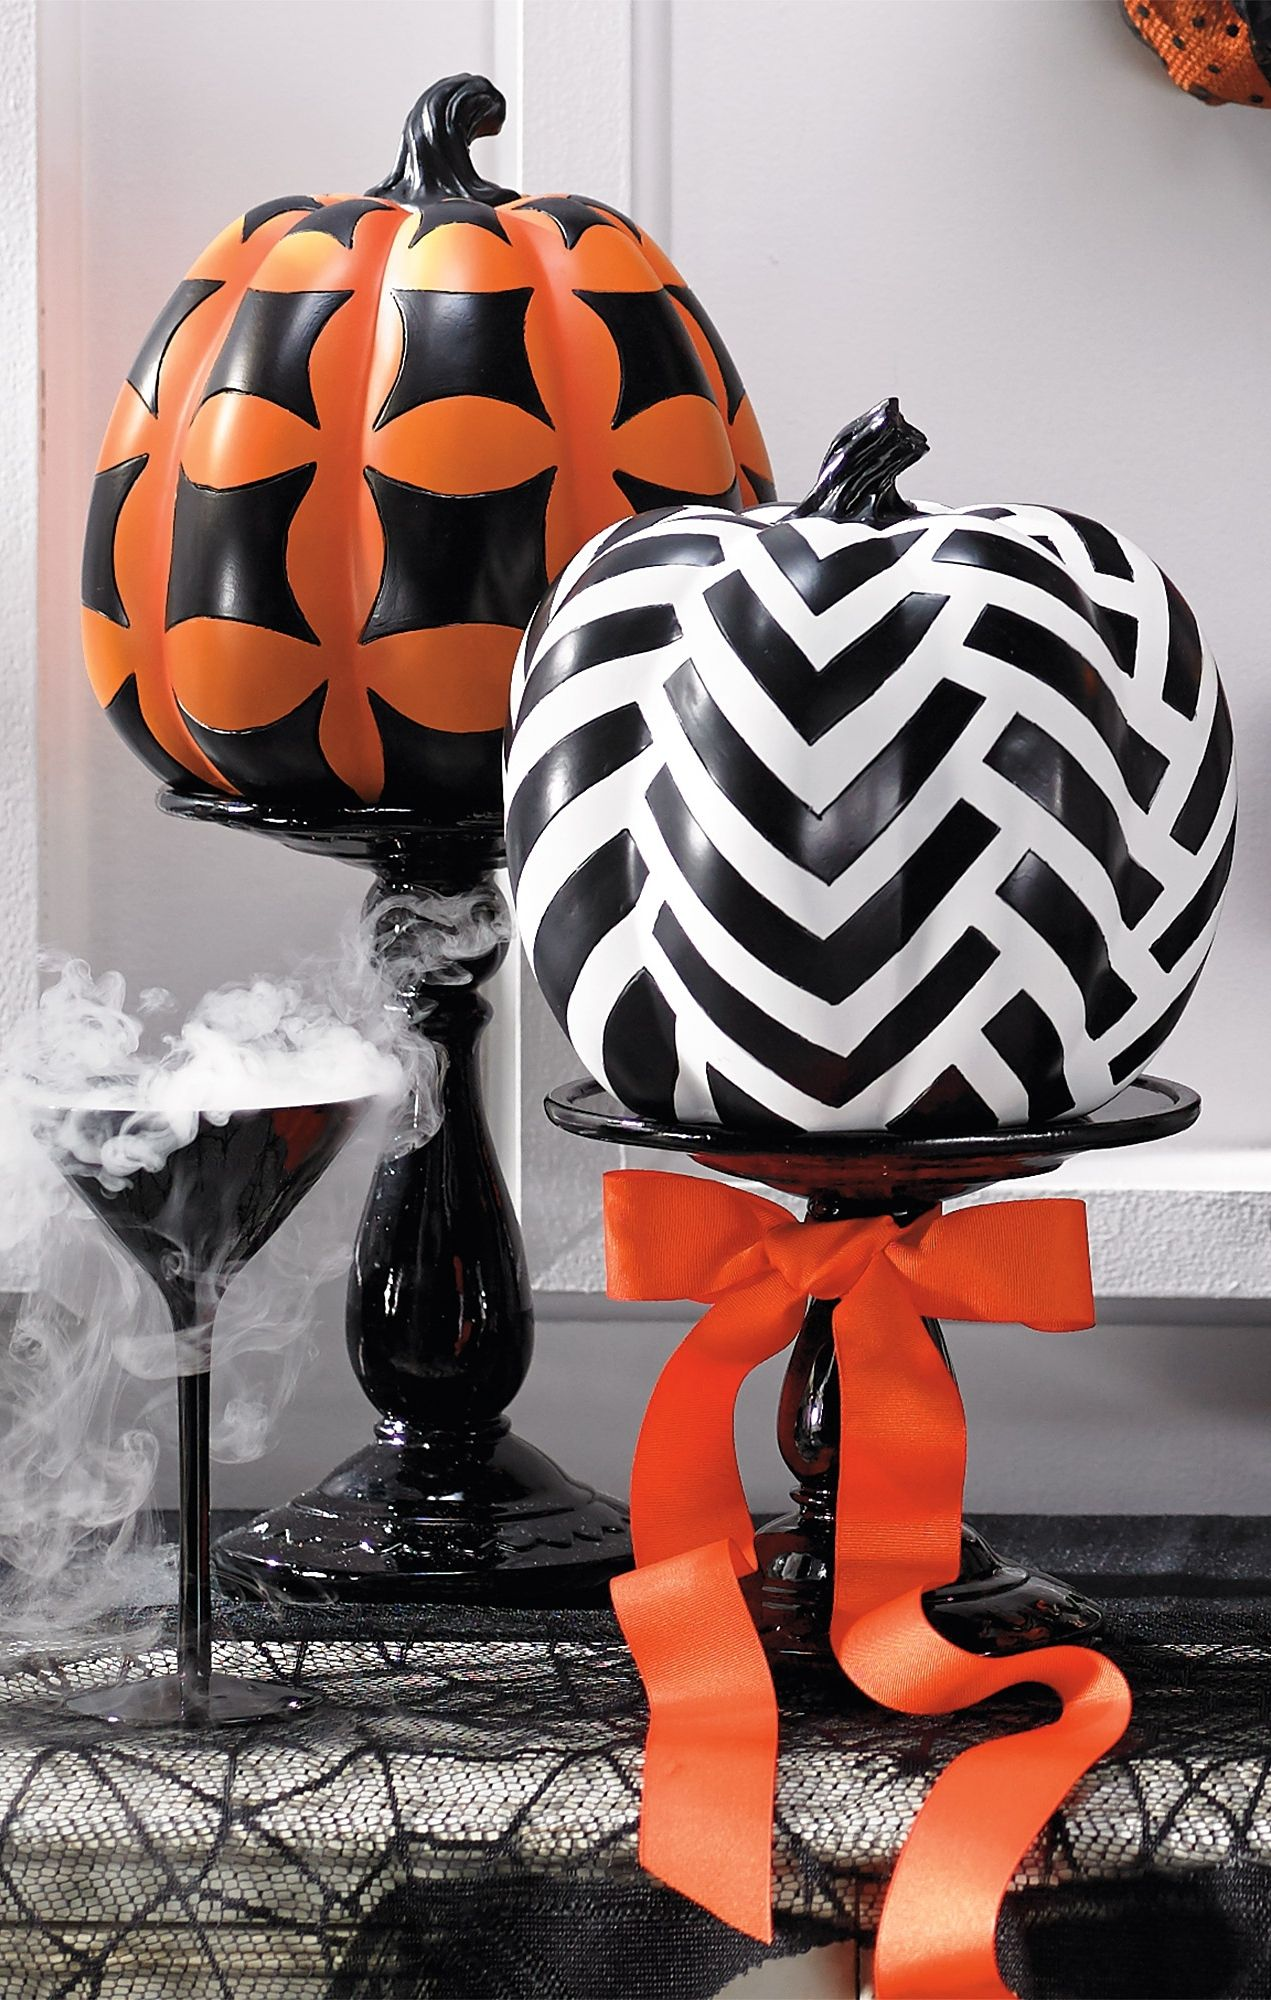 This Halloween, harvest your own everlasting collection of plump designer pumpkins and skip the carving. Each has its own painted personality and is topped with a sculpted black stem; select from a number of sizes, styles and colors.